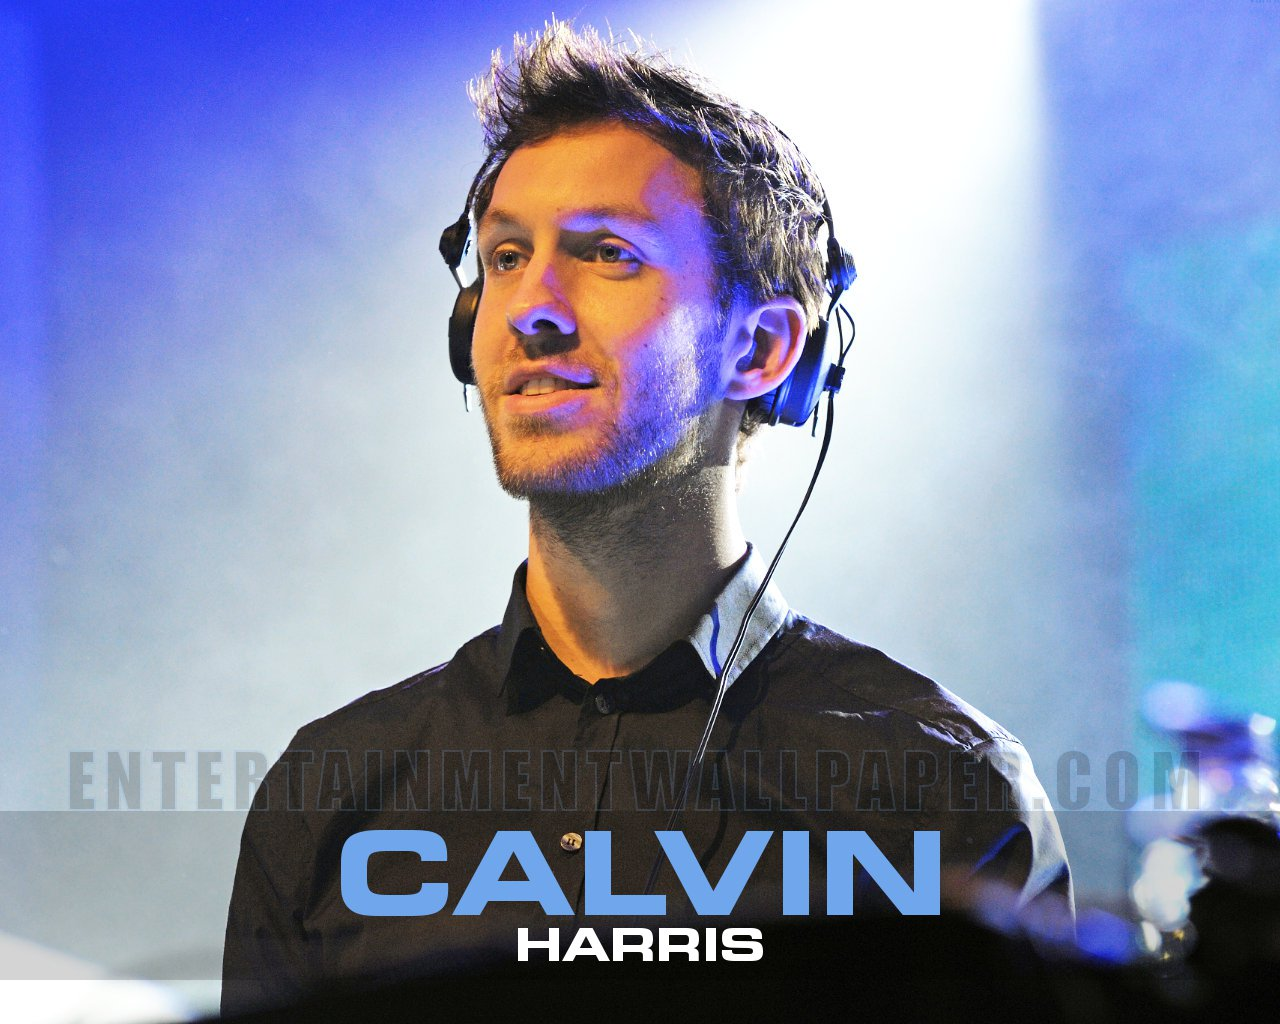 Calvin Harris backgrounds ...